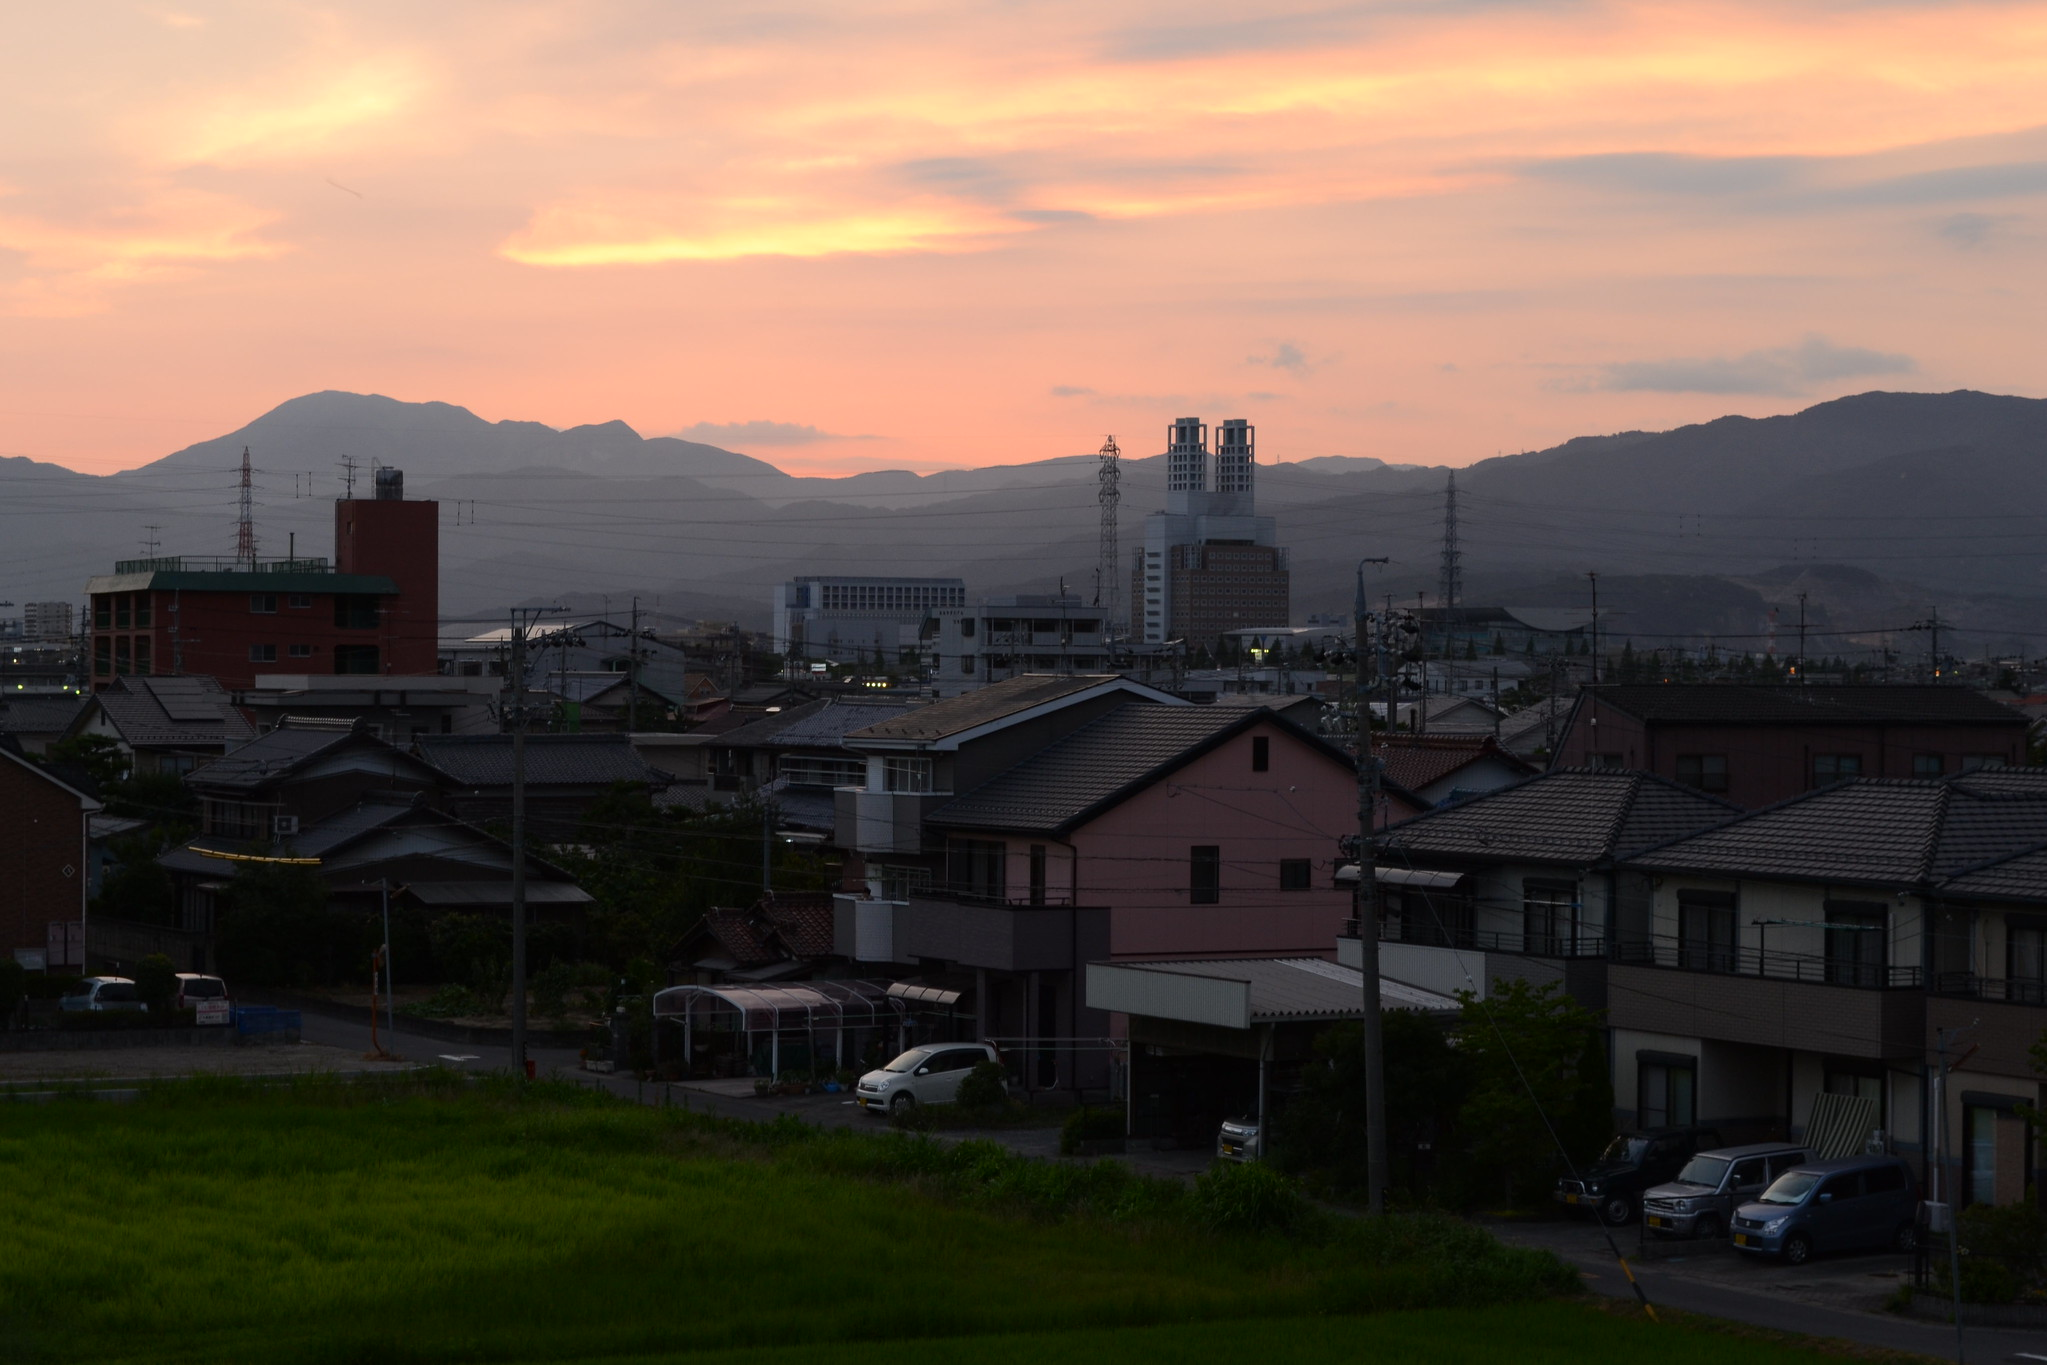 Japan, Gifu, Ogaki, Town, Sunset, Mountains,